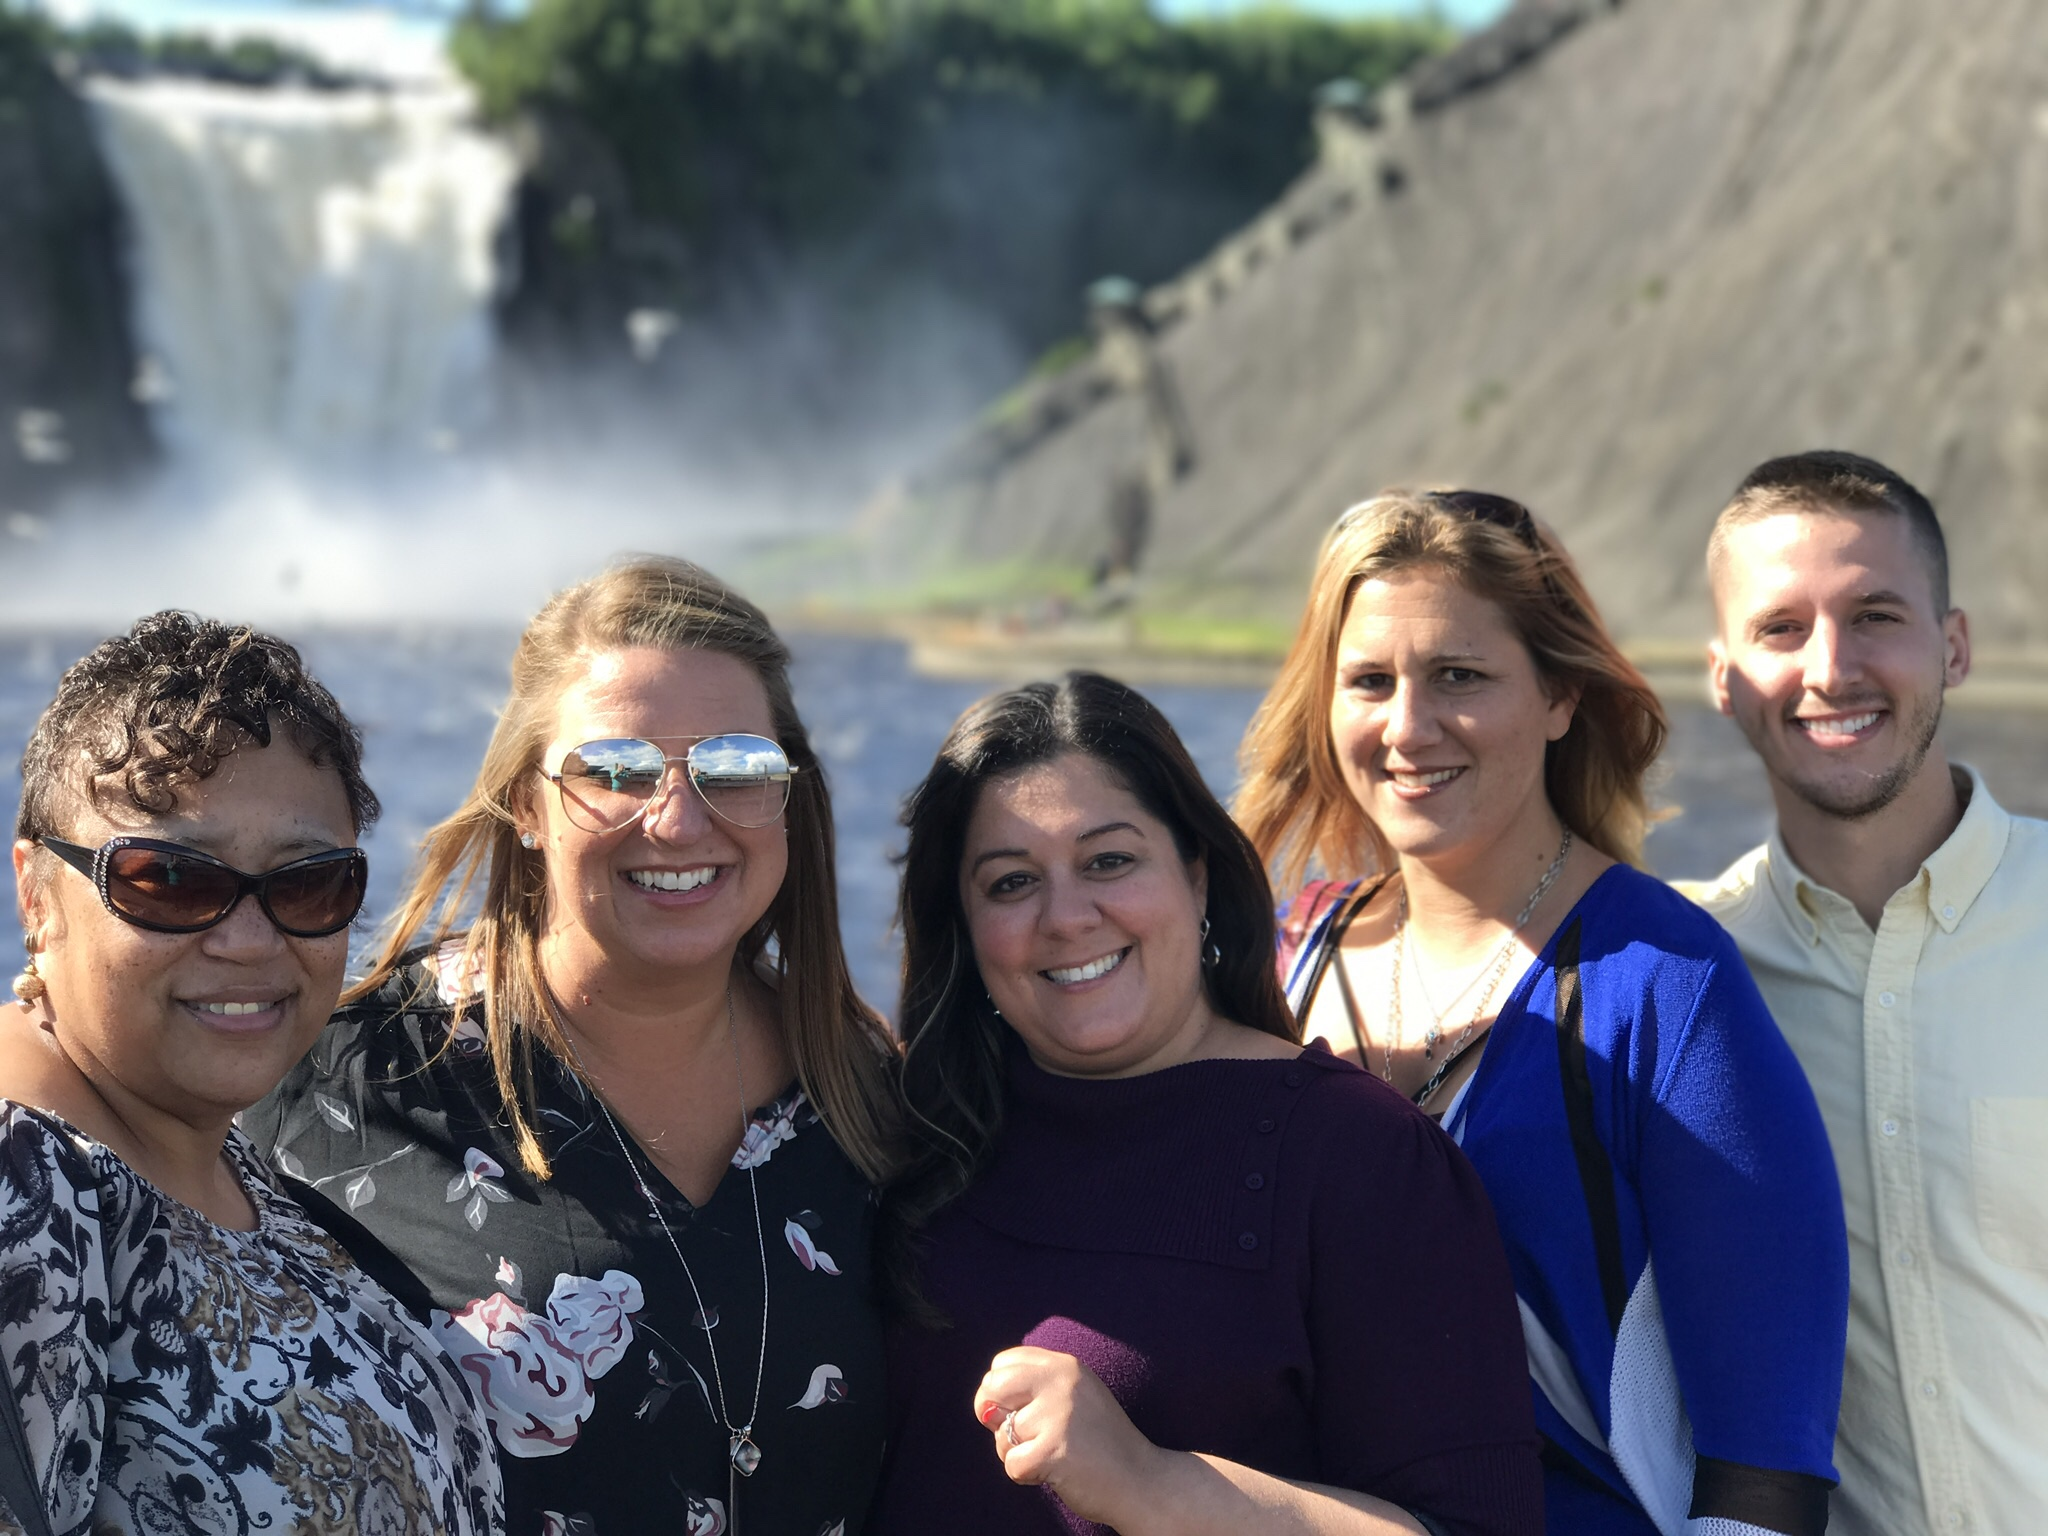 Participants on a recent Relate Strategy Group  sales mission  created a strengthen industry relationships, even between appointments, with some local sightseeing.